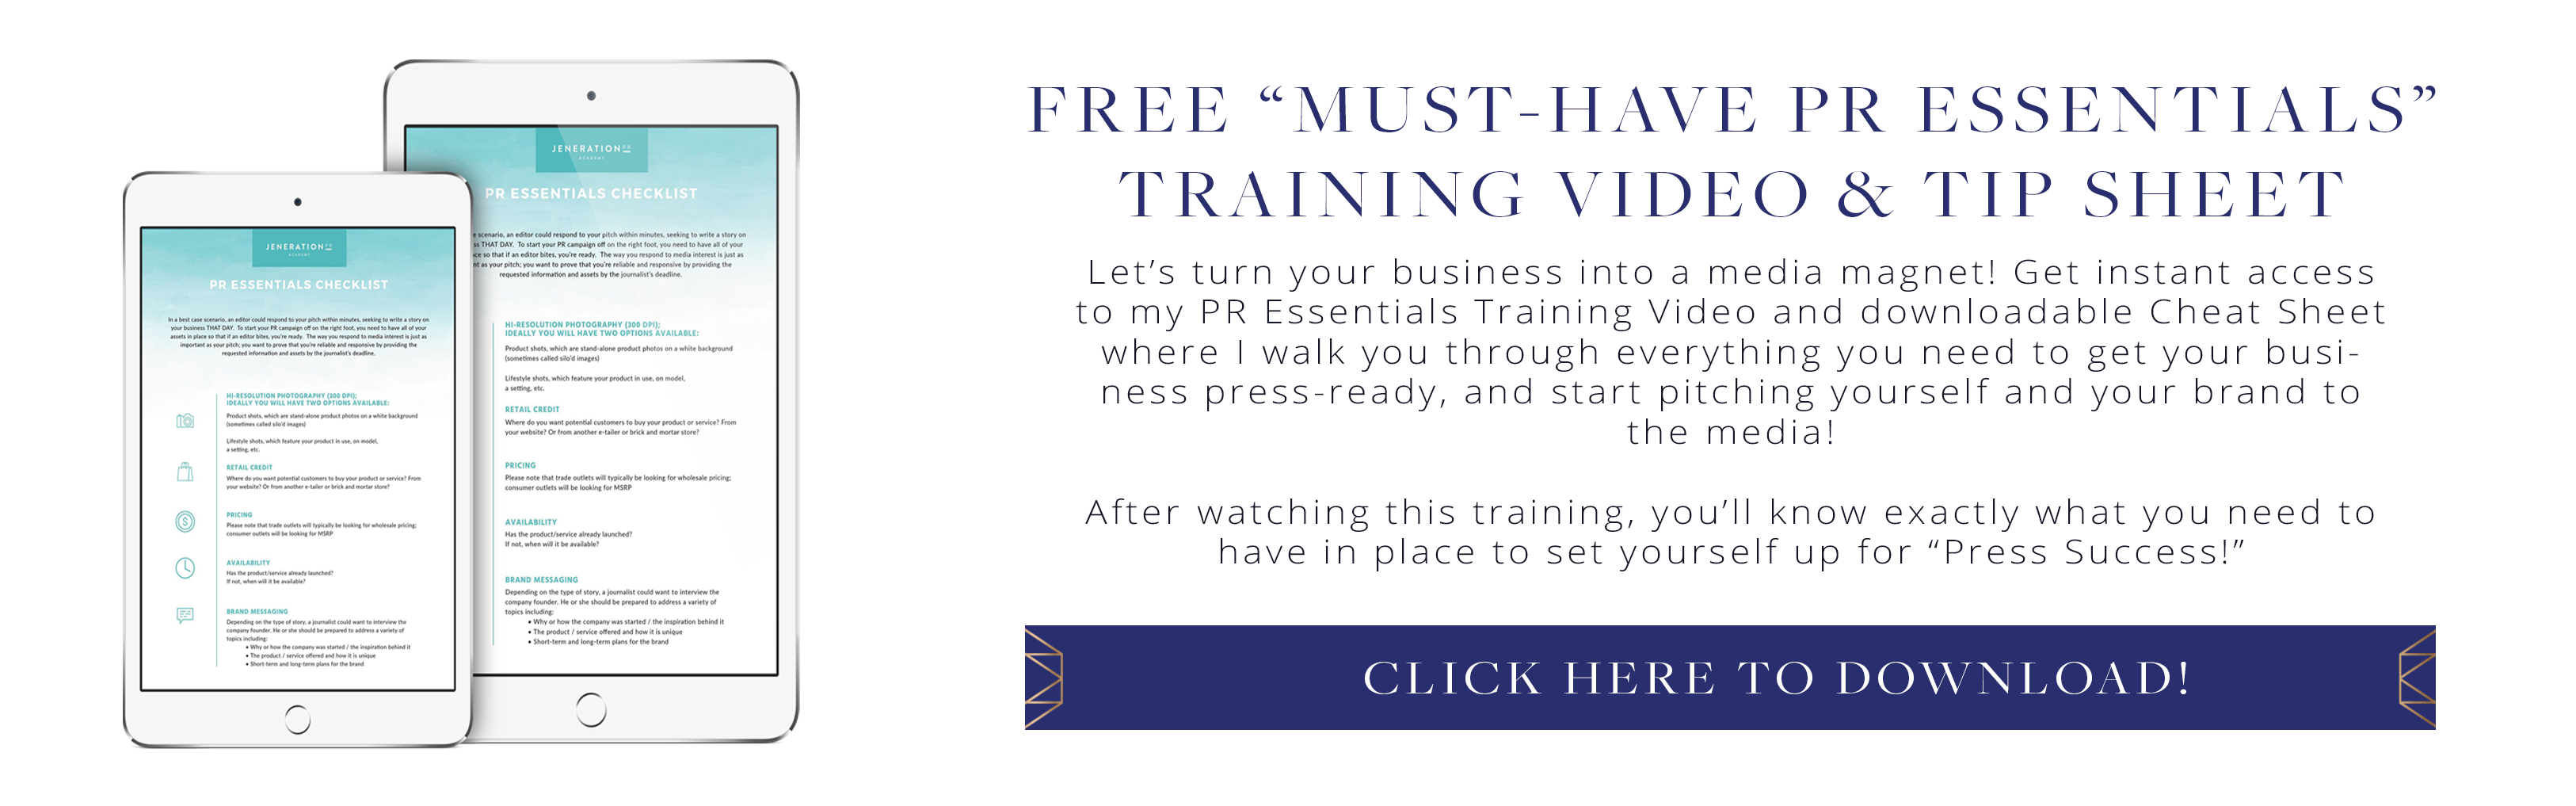 Free Must-Have PR Essentials Training Video & Tips Sheet